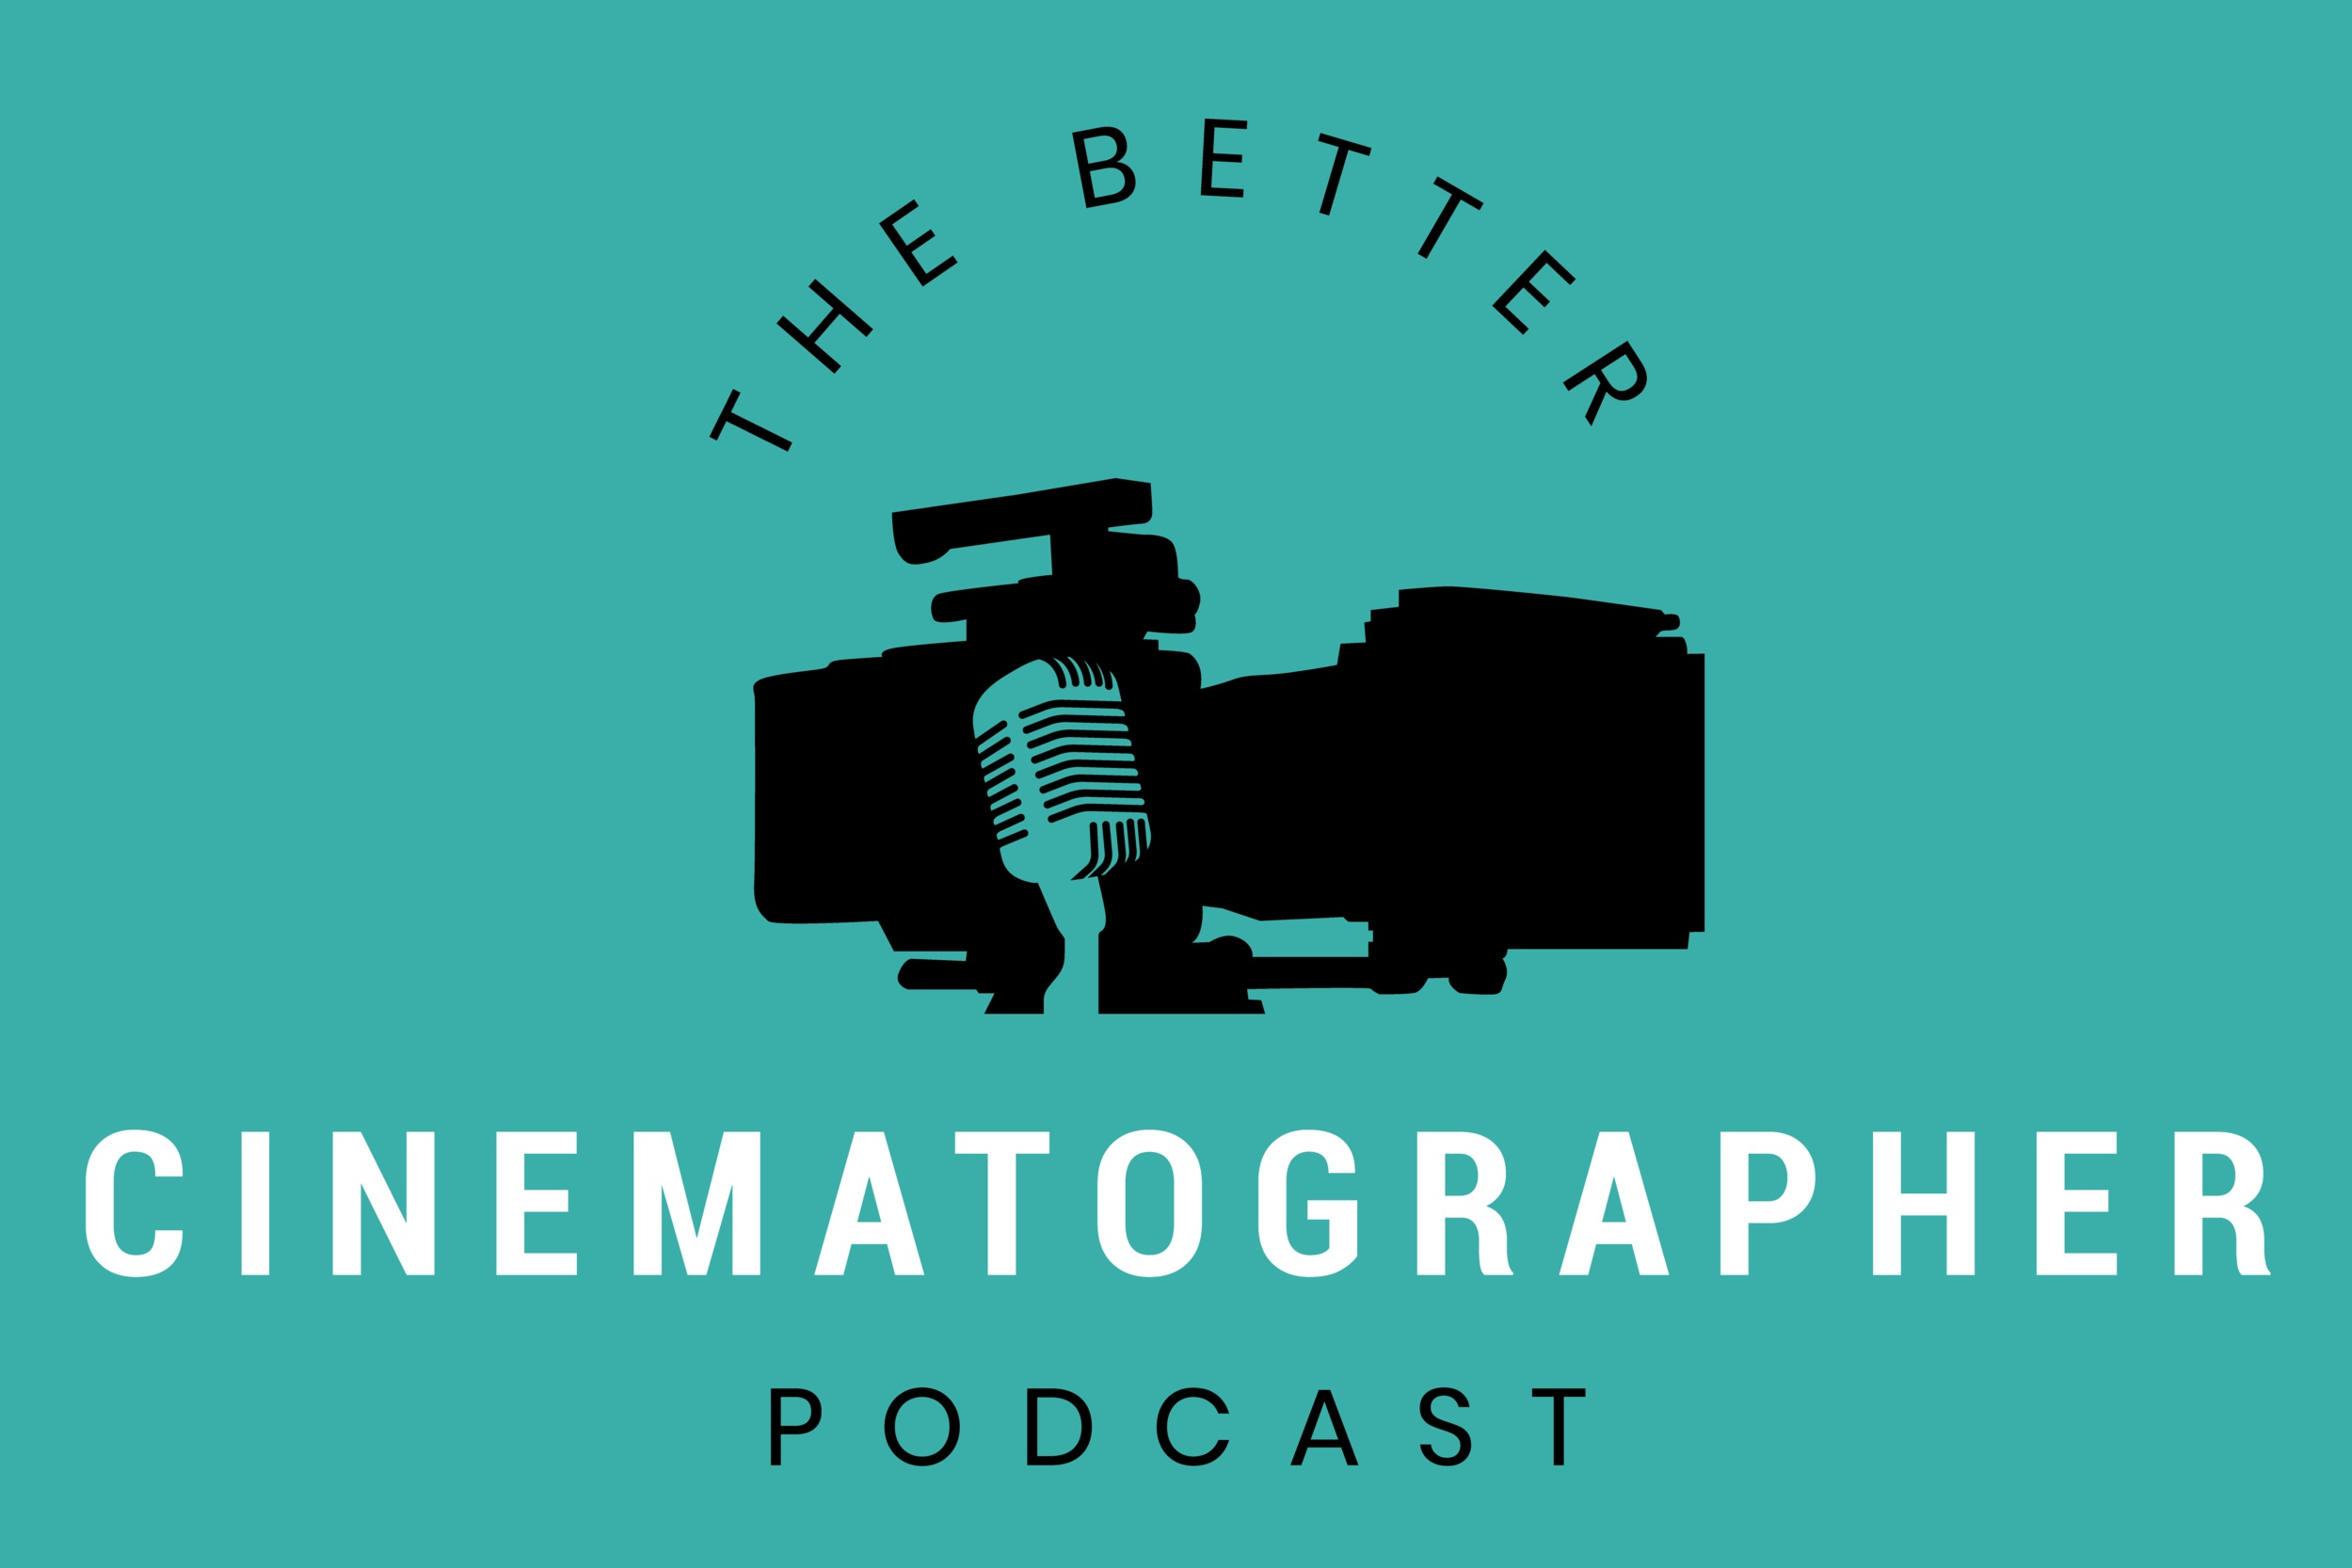 carter+hewlett+cinematographer+podcast+logo